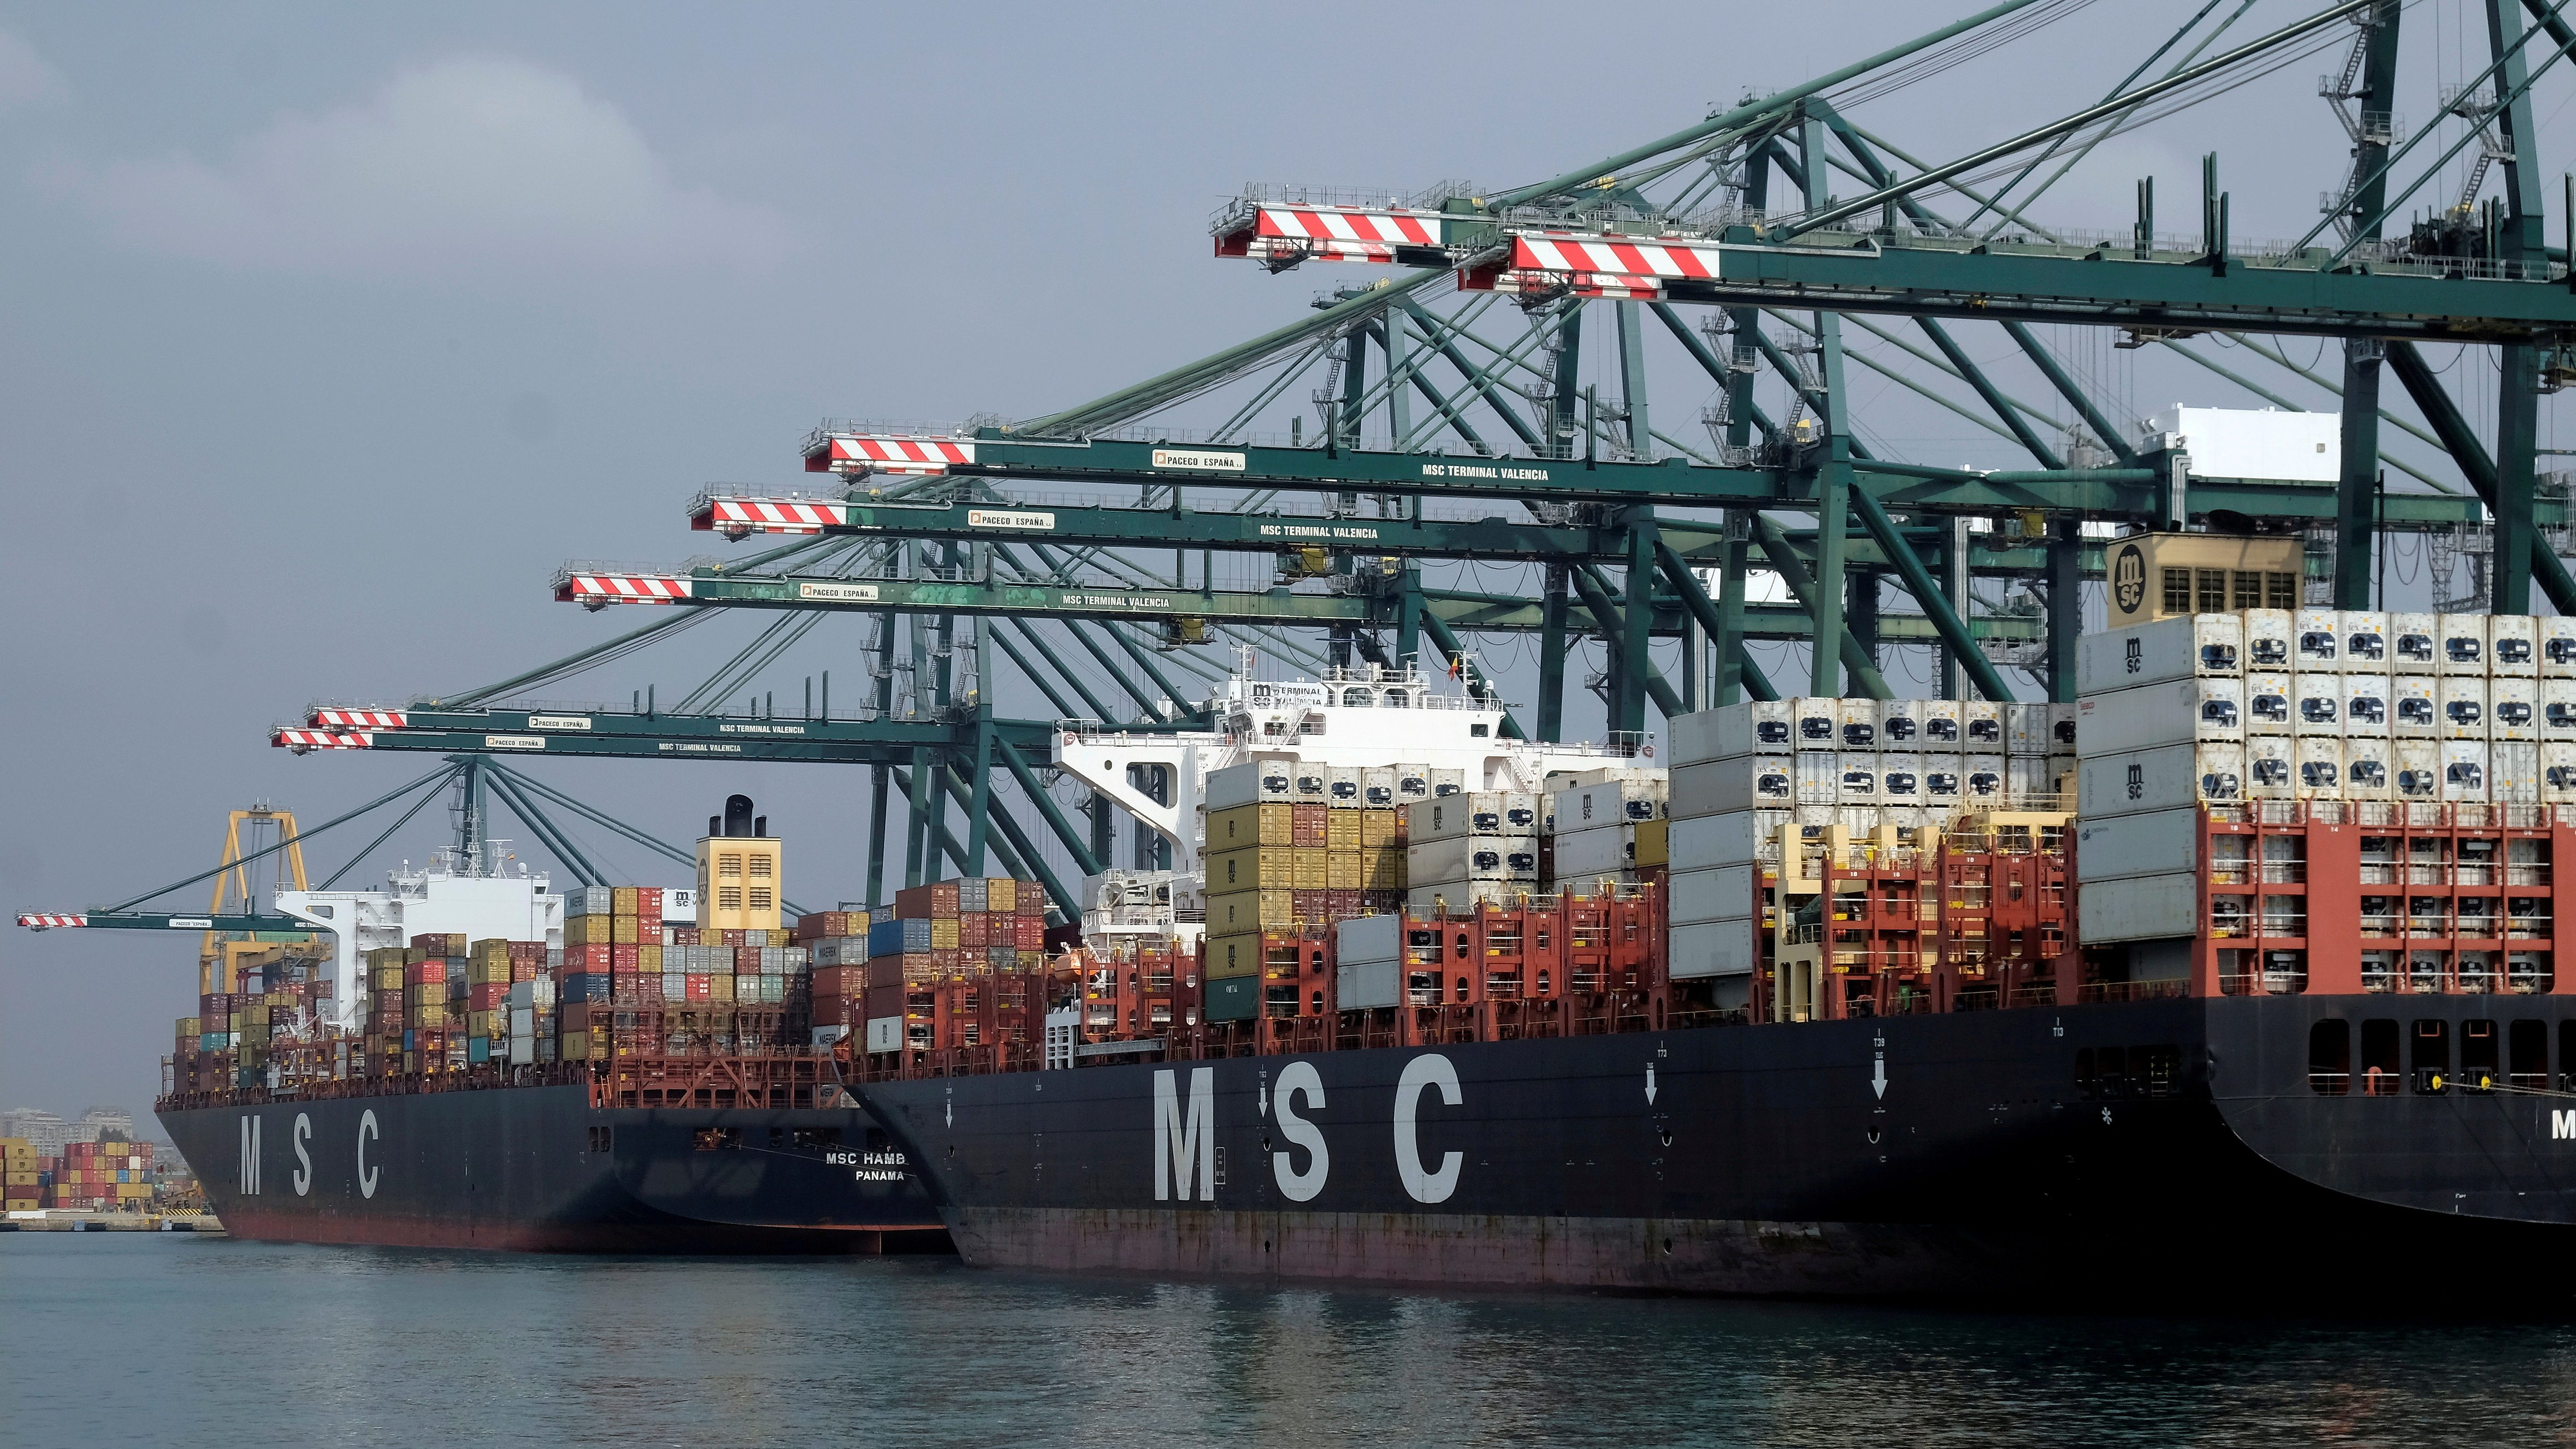 Cargo ships dock beside cranes at the MSC container terminal at the port of Valencia, Spain.